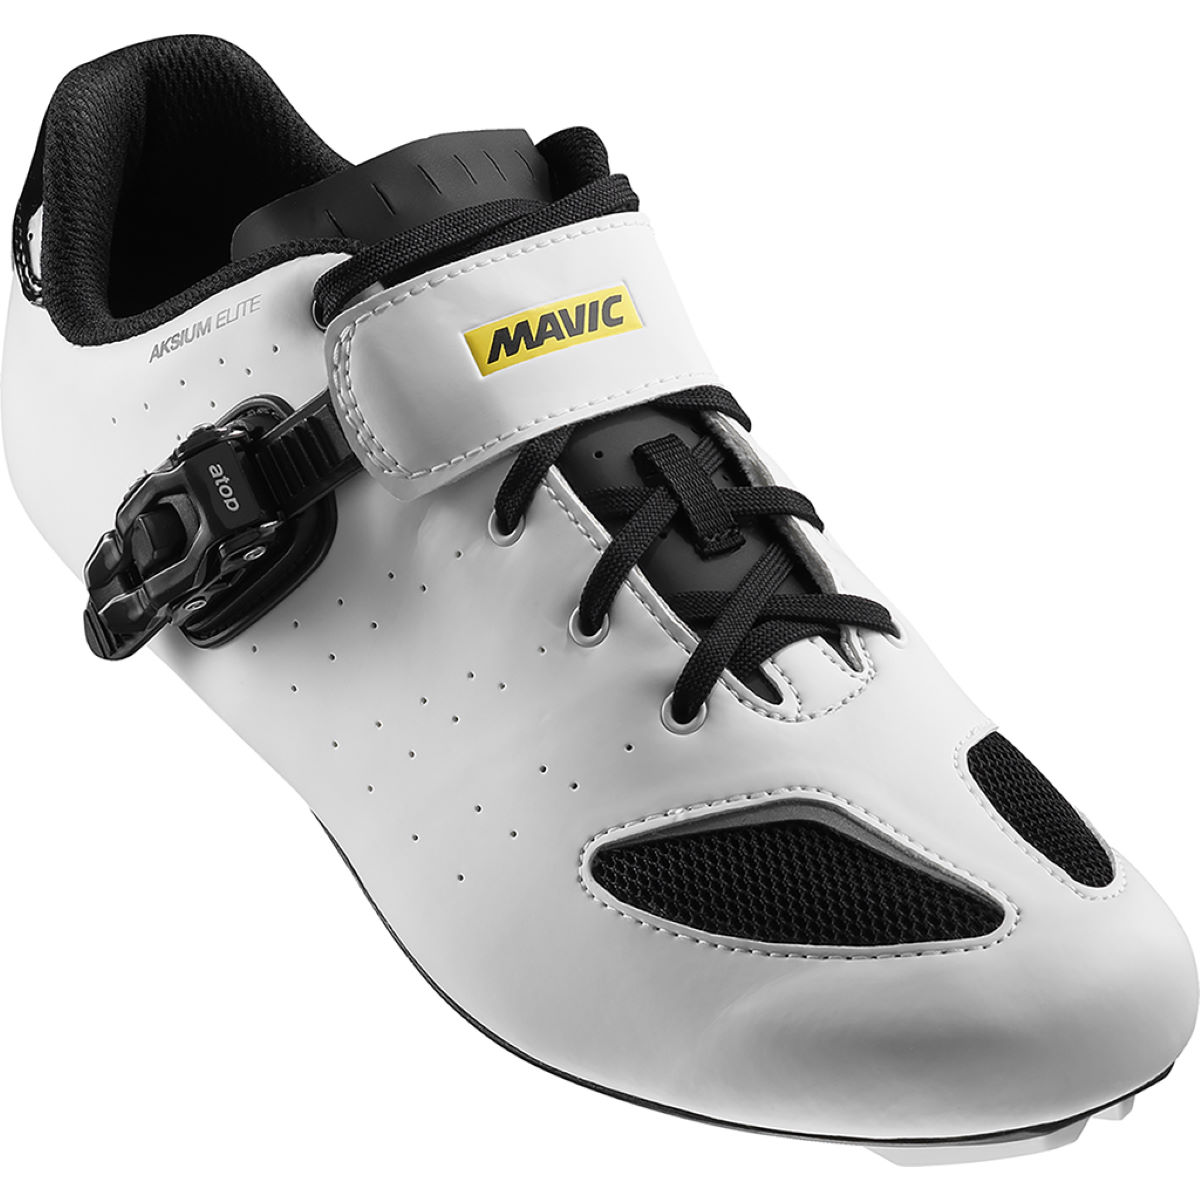 Chaussures de route Mavic Aksium Elite III - 13 UK Blanc